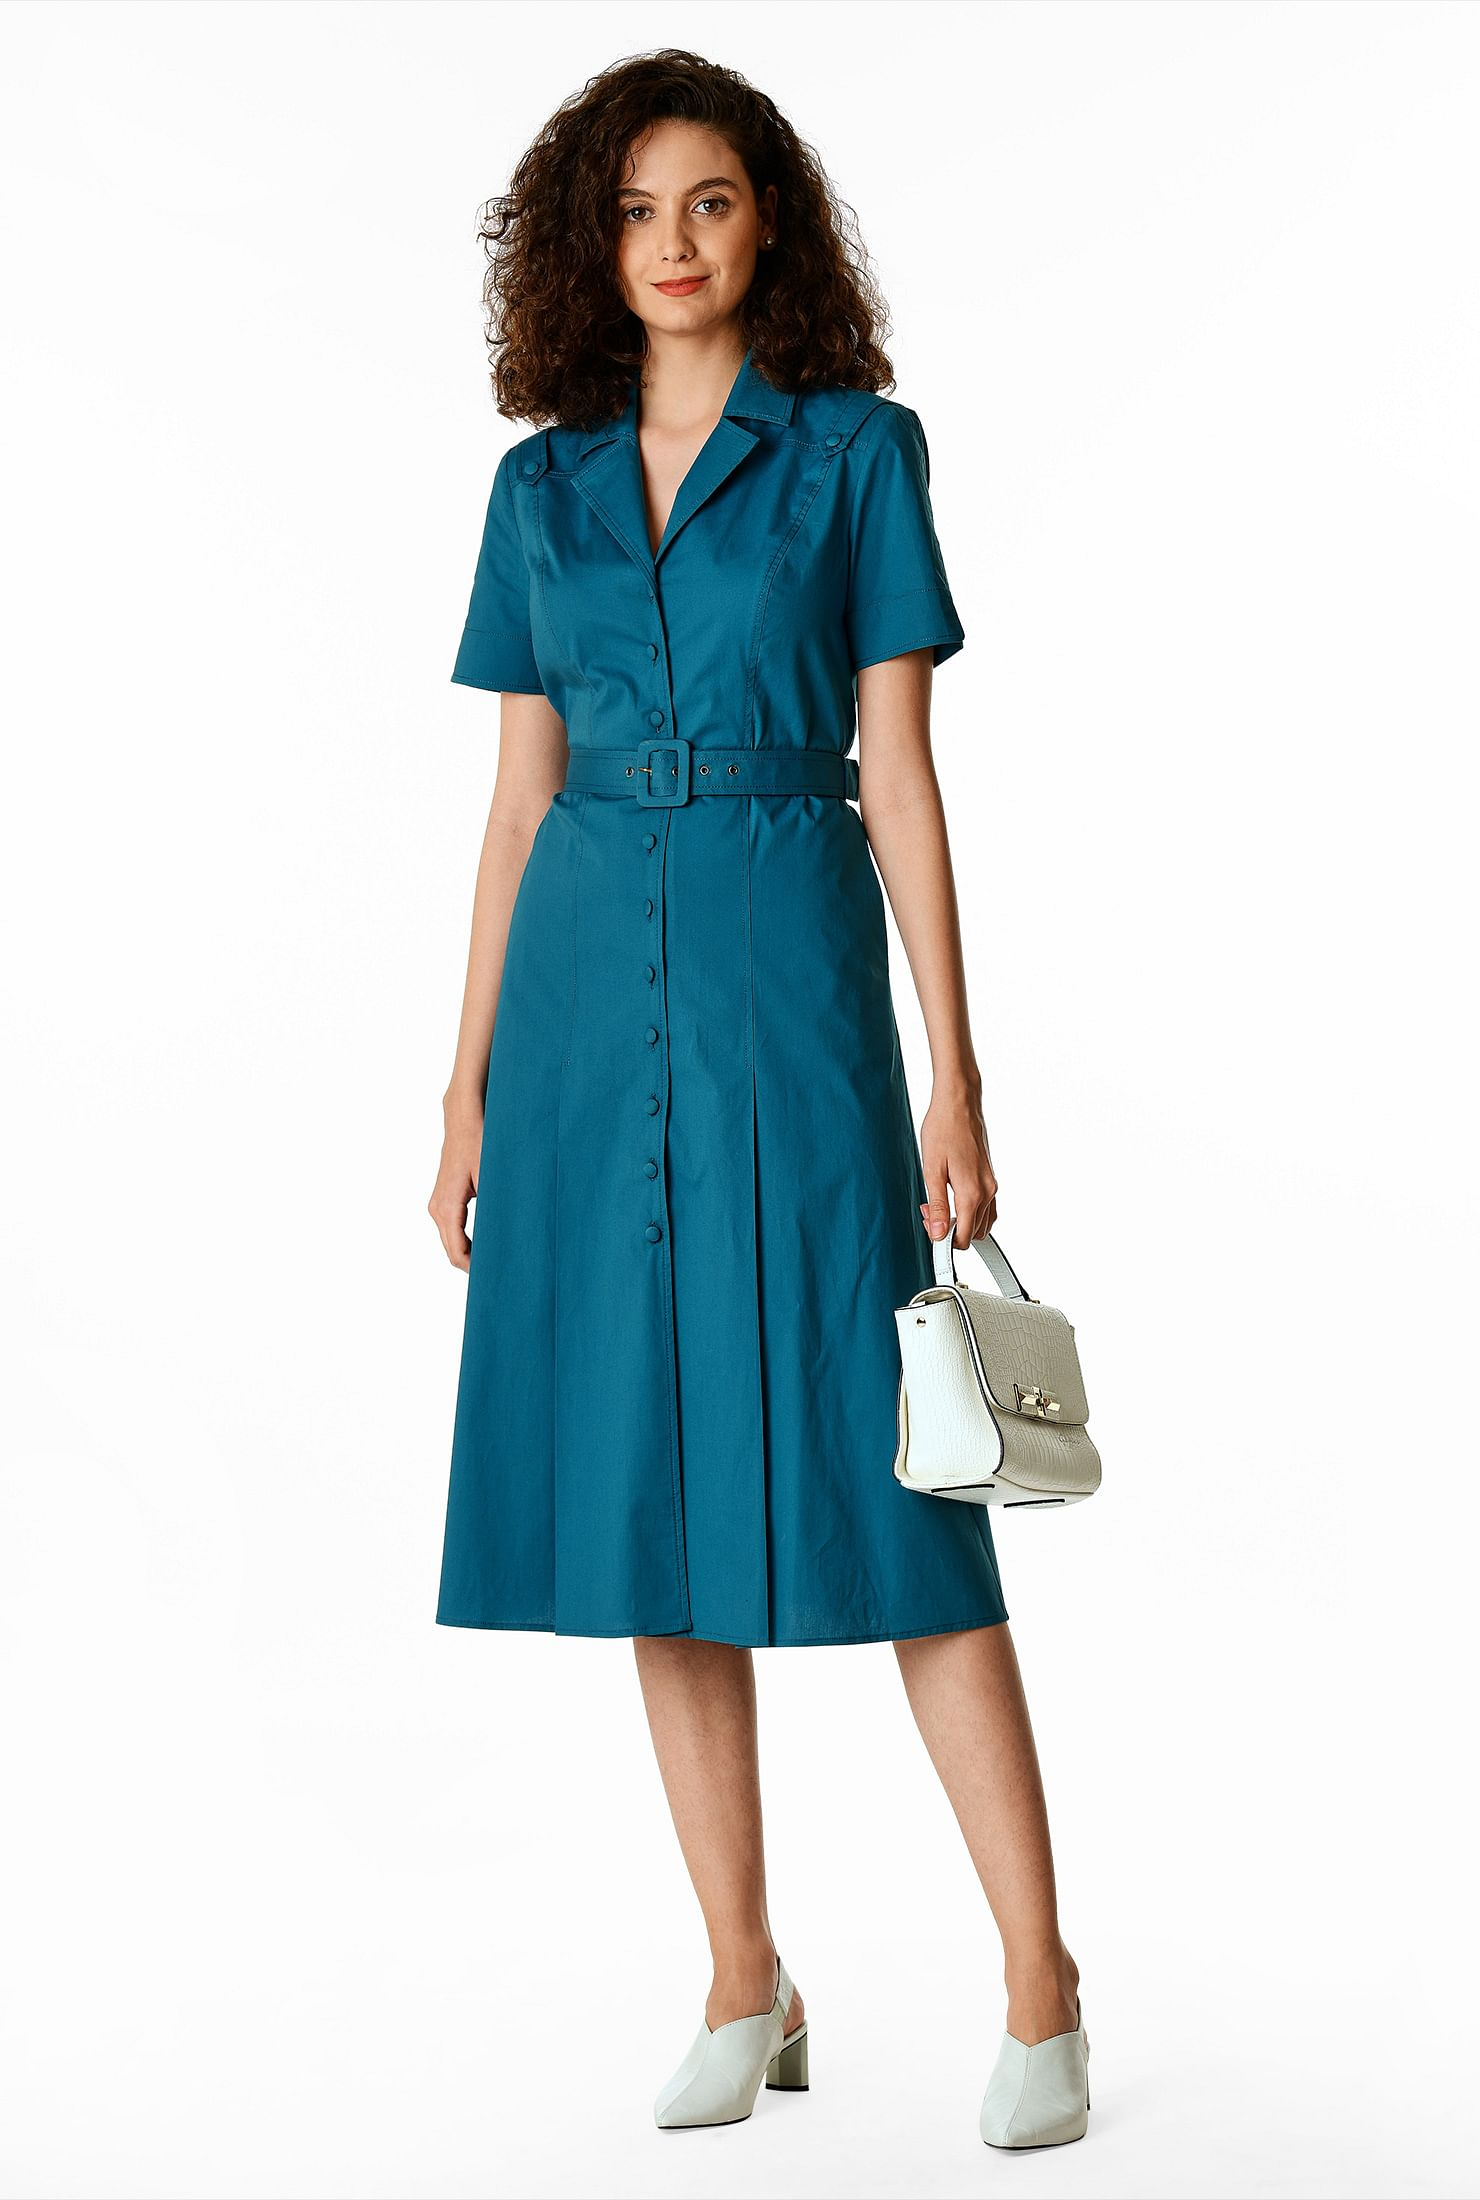 500 Vintage Style Dresses for Sale | Vintage Inspired Dresses Cotton poplin belted shirtdress $59.99 AT vintagedancer.com